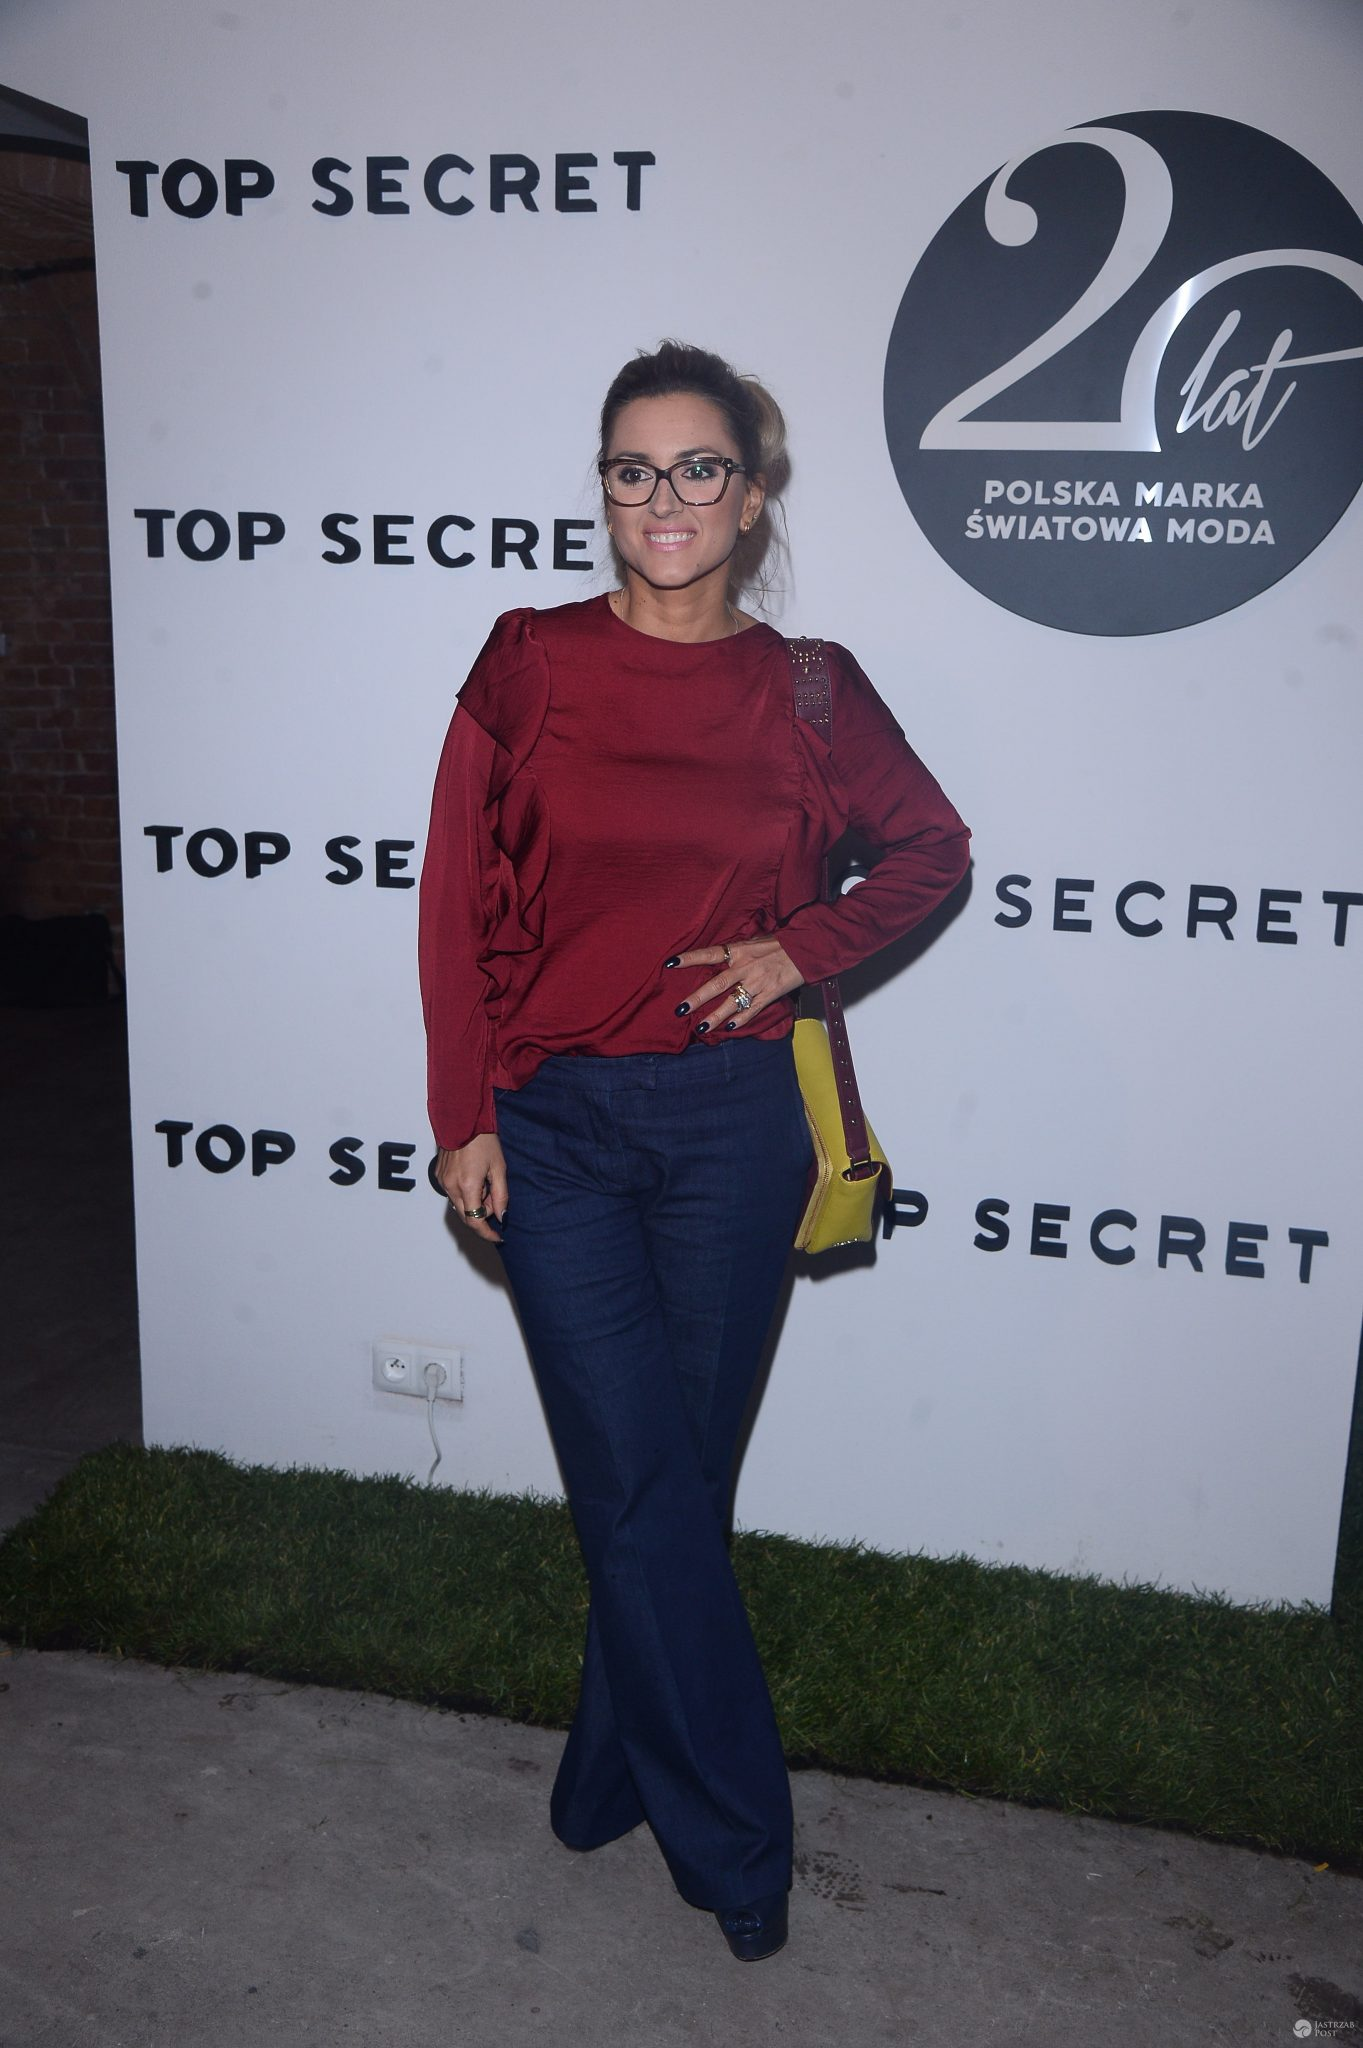 Karolina Szostak - 20 lat Top Secret